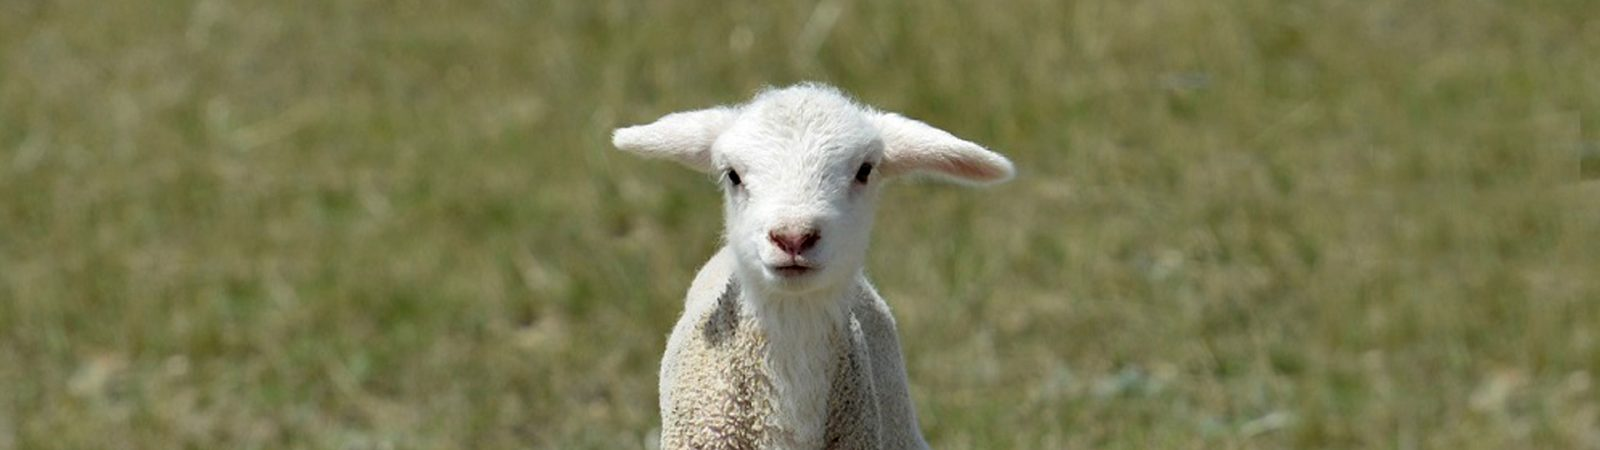 Baby Lamb in a green field - this image is not a link